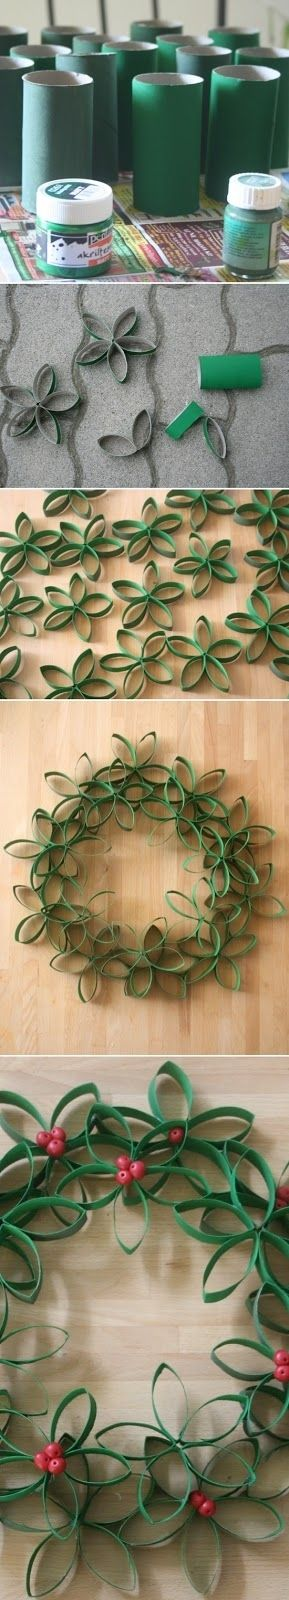 Toilet Paper Roll Wreath | 21 Toilet Paper Roll Craft Ideas